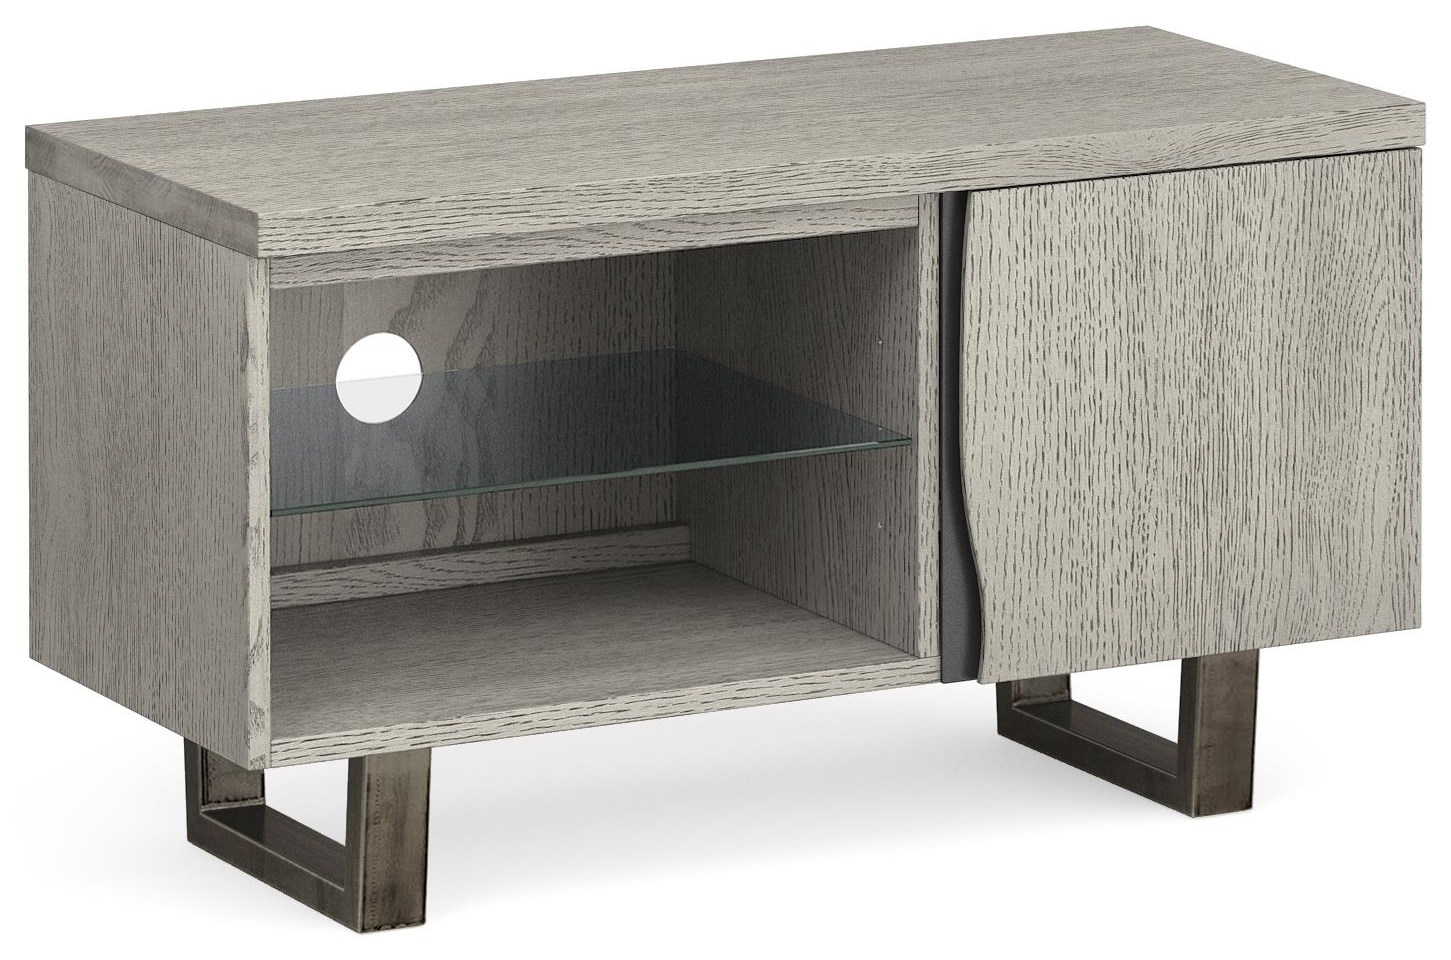 Brooklyn Small TV Stand by Global Home at Red Knot